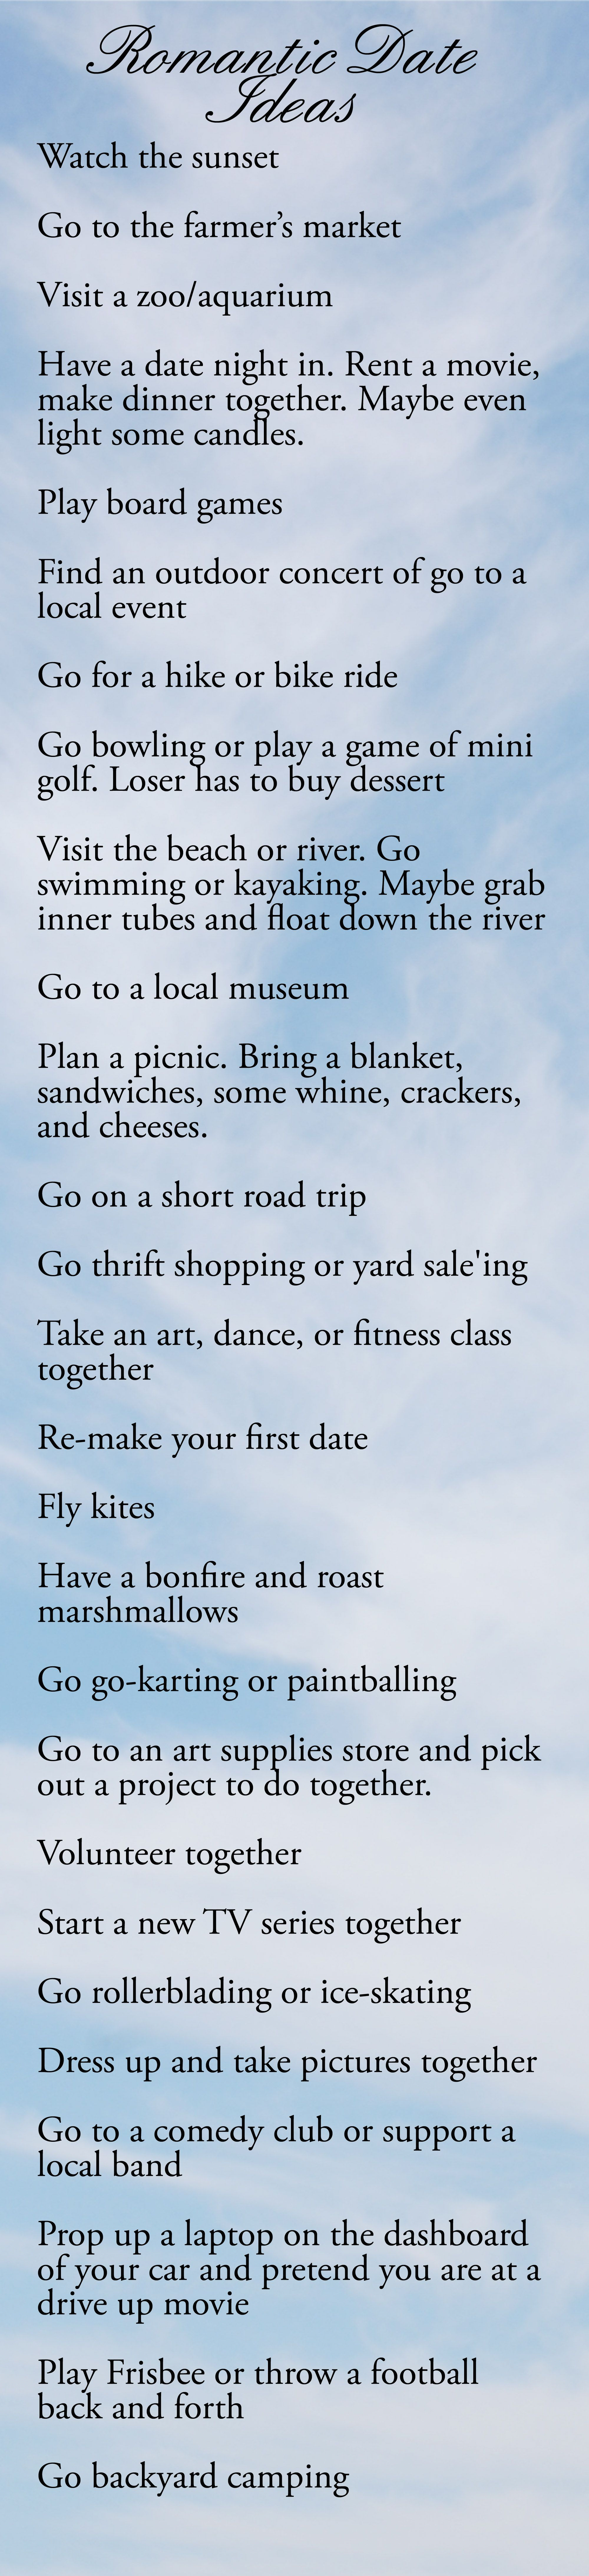 These Are Some Great Date Ideas That I May Have To Try